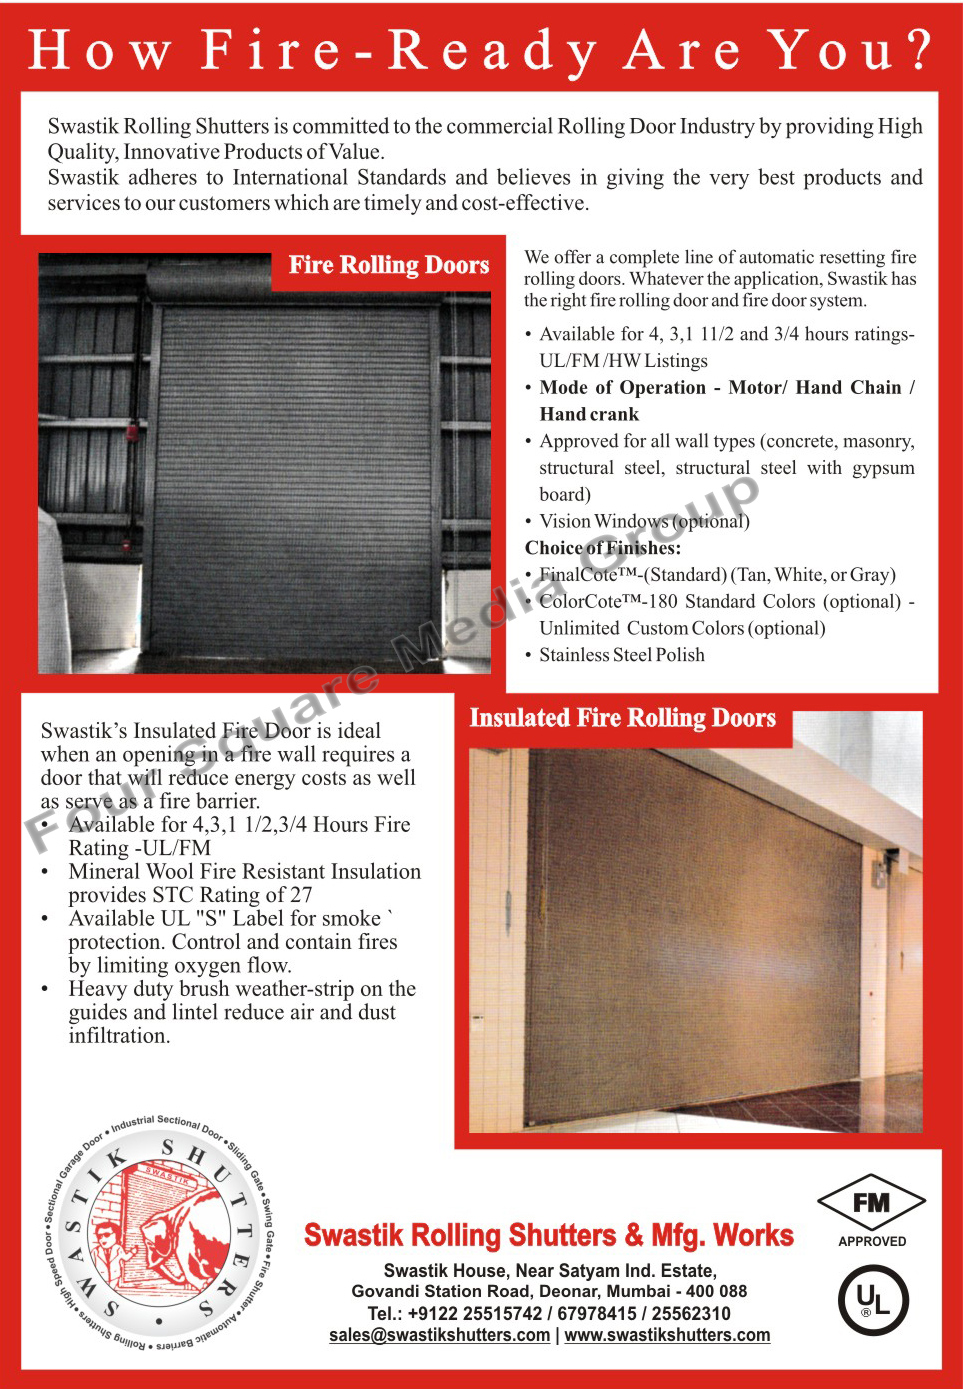 Fire Rolling Doors, Insulated Fire Rolling Doors, Fire Door Systems